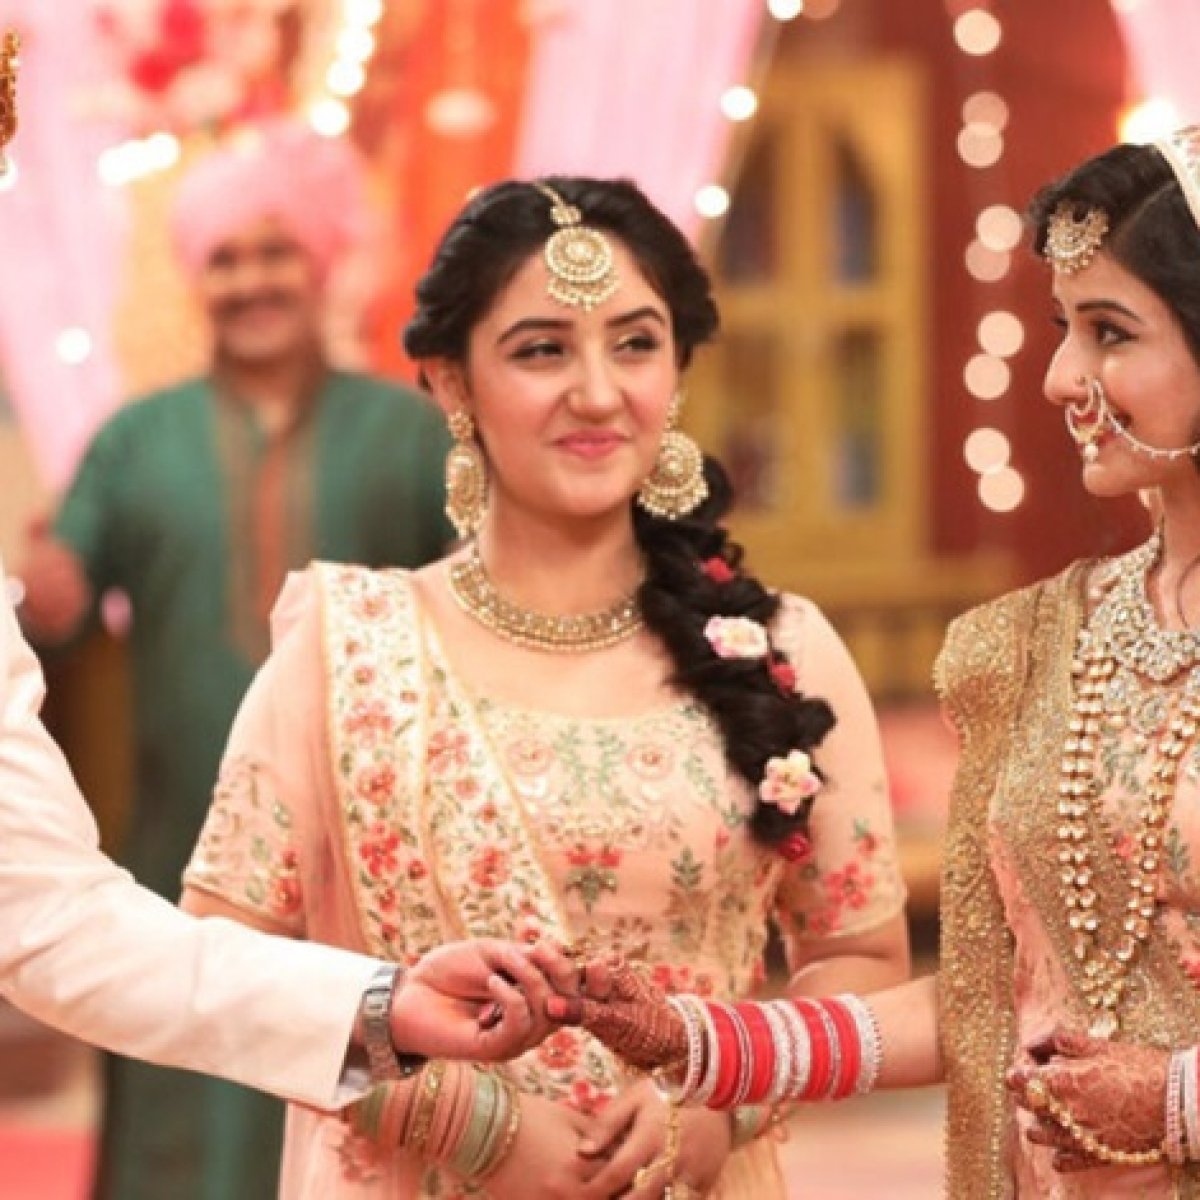 Paridhi Sharma, Aniruddh Dave asked to leave 'Patiala Babes' overnight